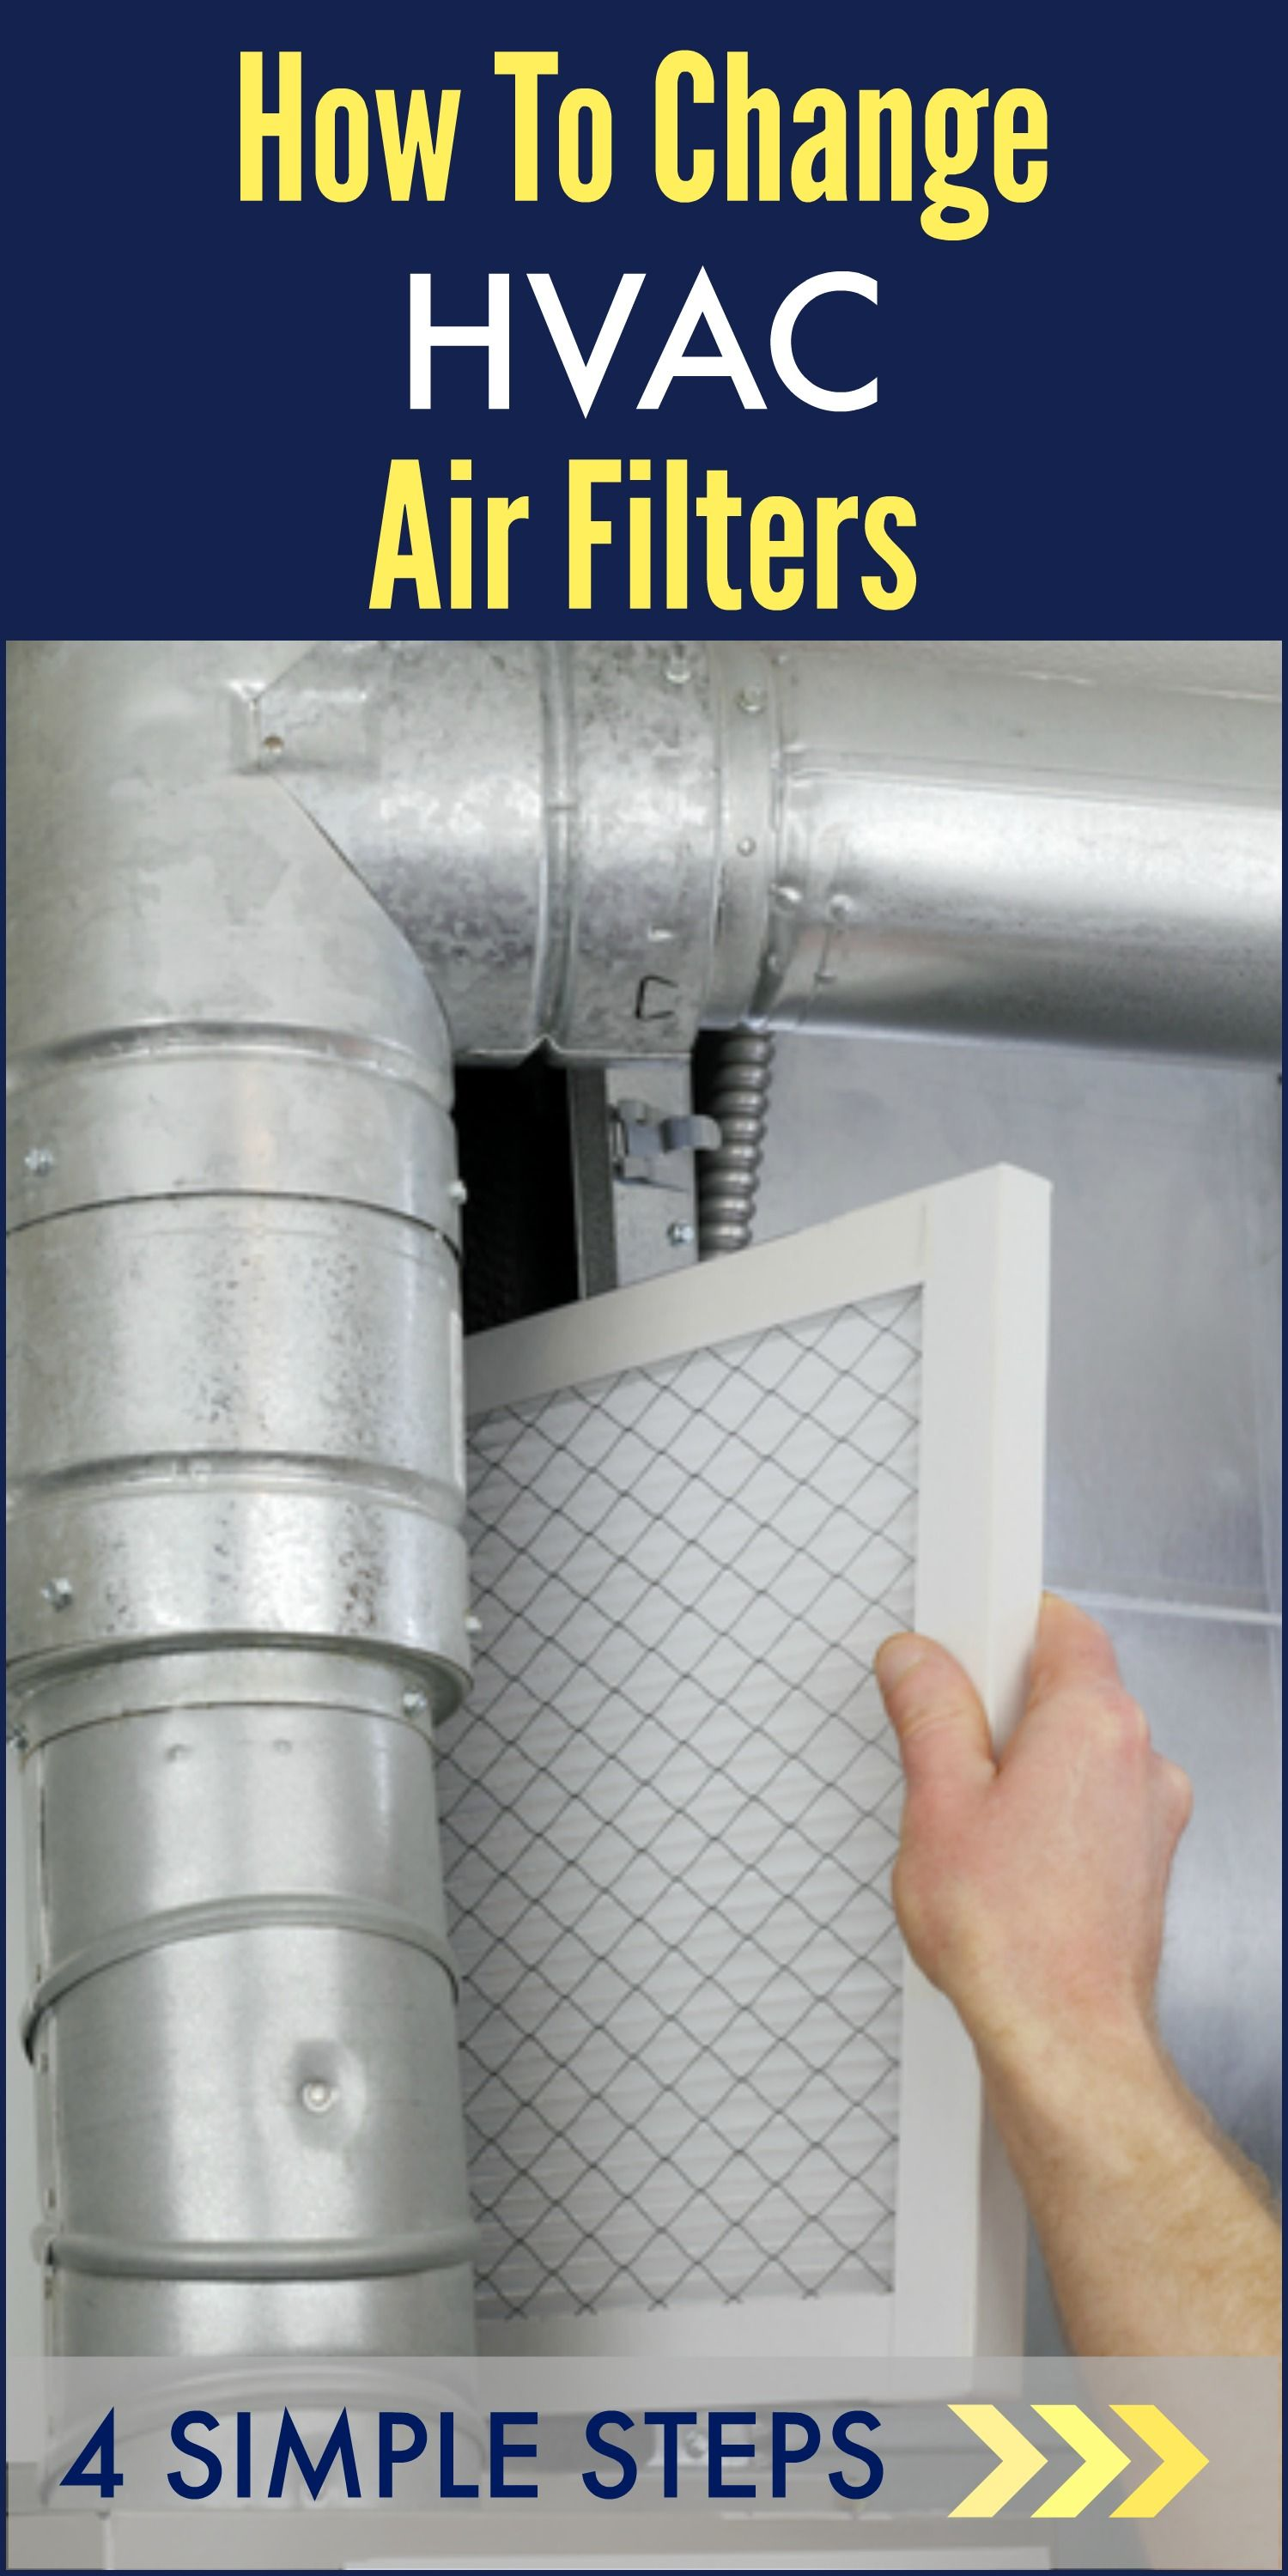 How To Change Hvac Filters Http Www Woodard247 Com 2014 04 How